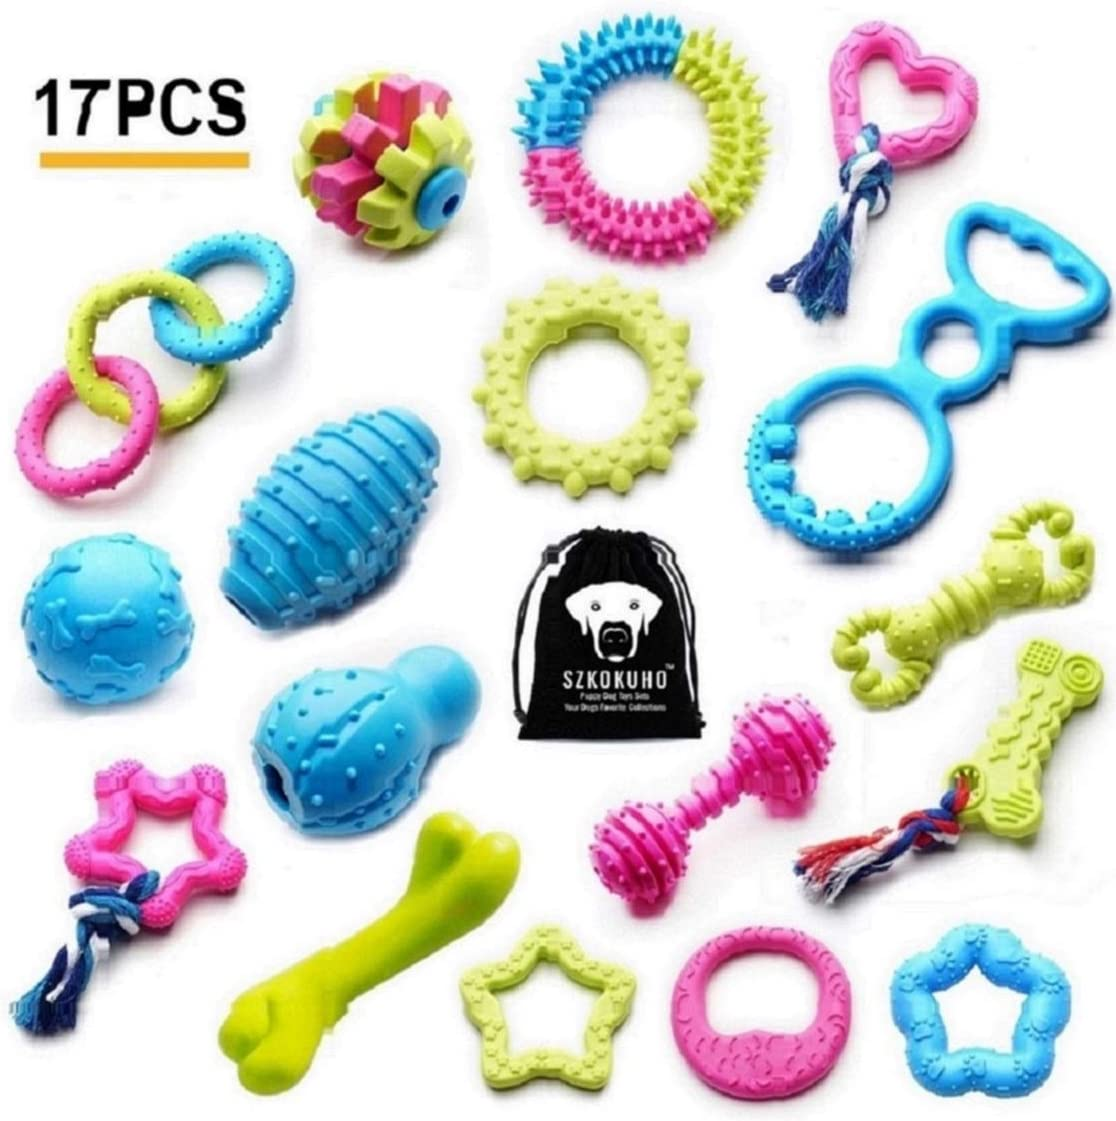 SZKOKUHO 17 Packs Durable Pet Puppy Dog Chew Toys Set Puppy Teething Ball Toys Puppy Rope Dog Tug Toy Safety Design